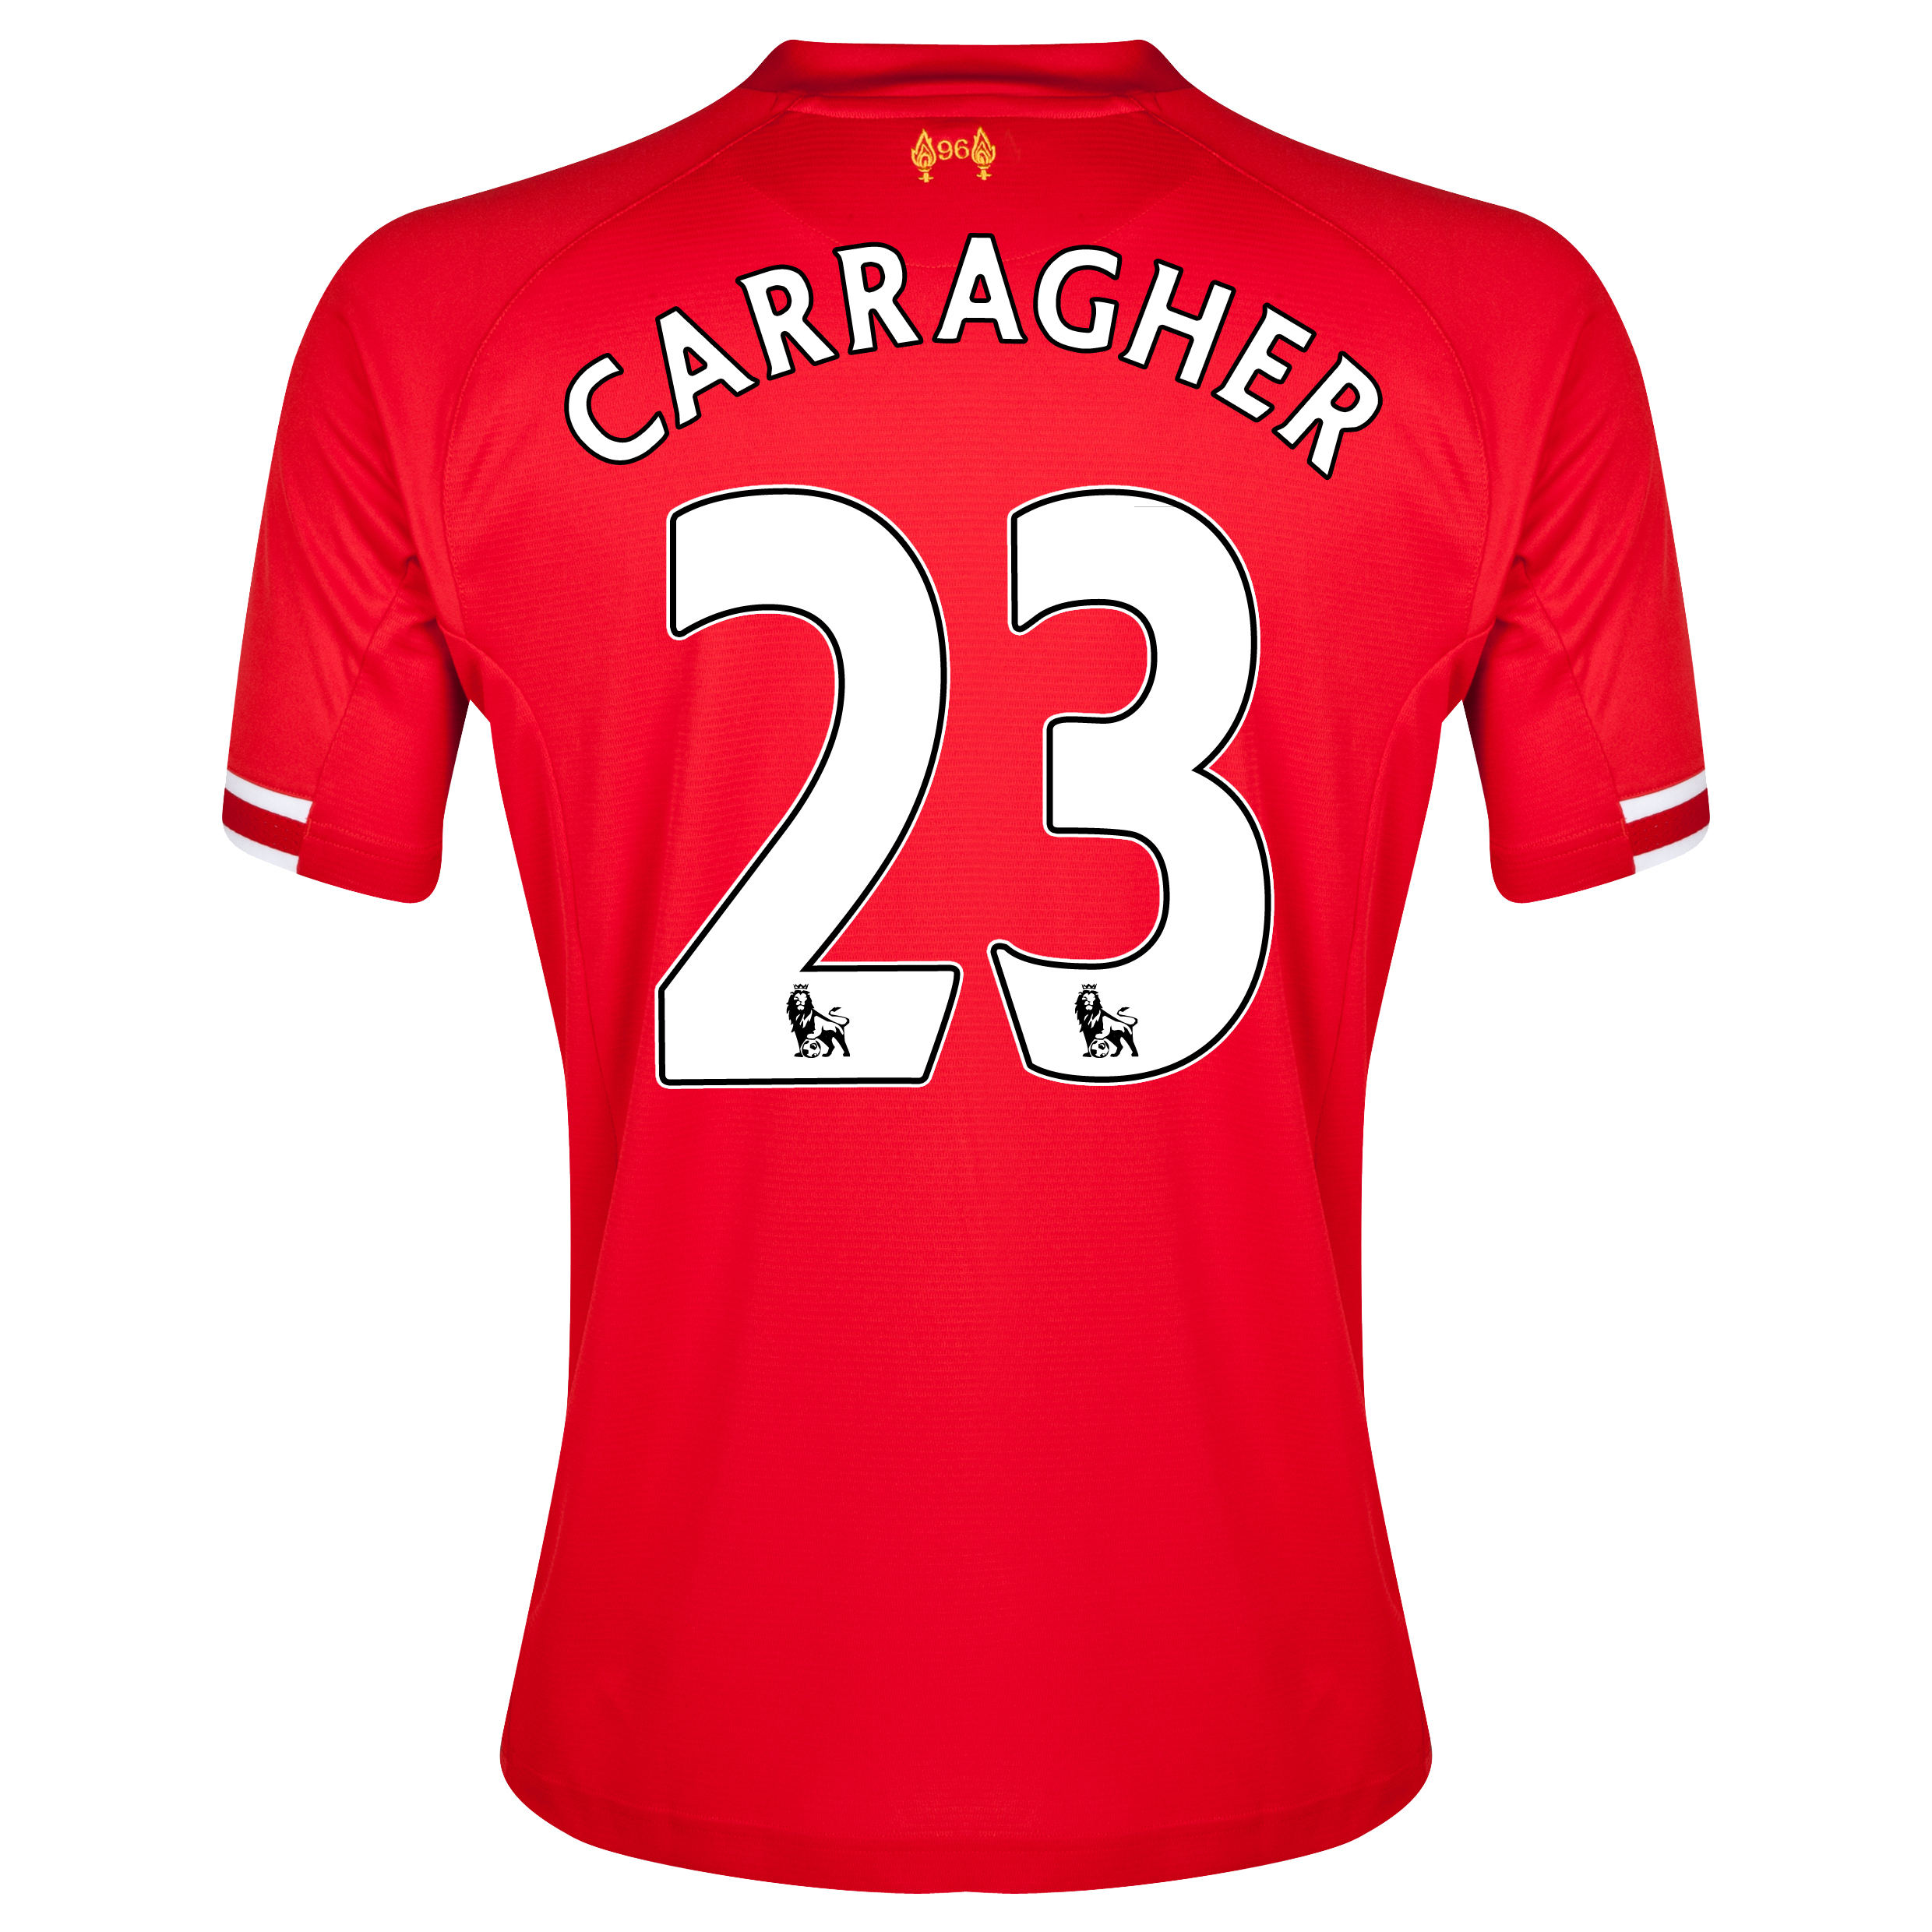 Liverpool Home Shirt 2013/14 with Carragher 23 printing